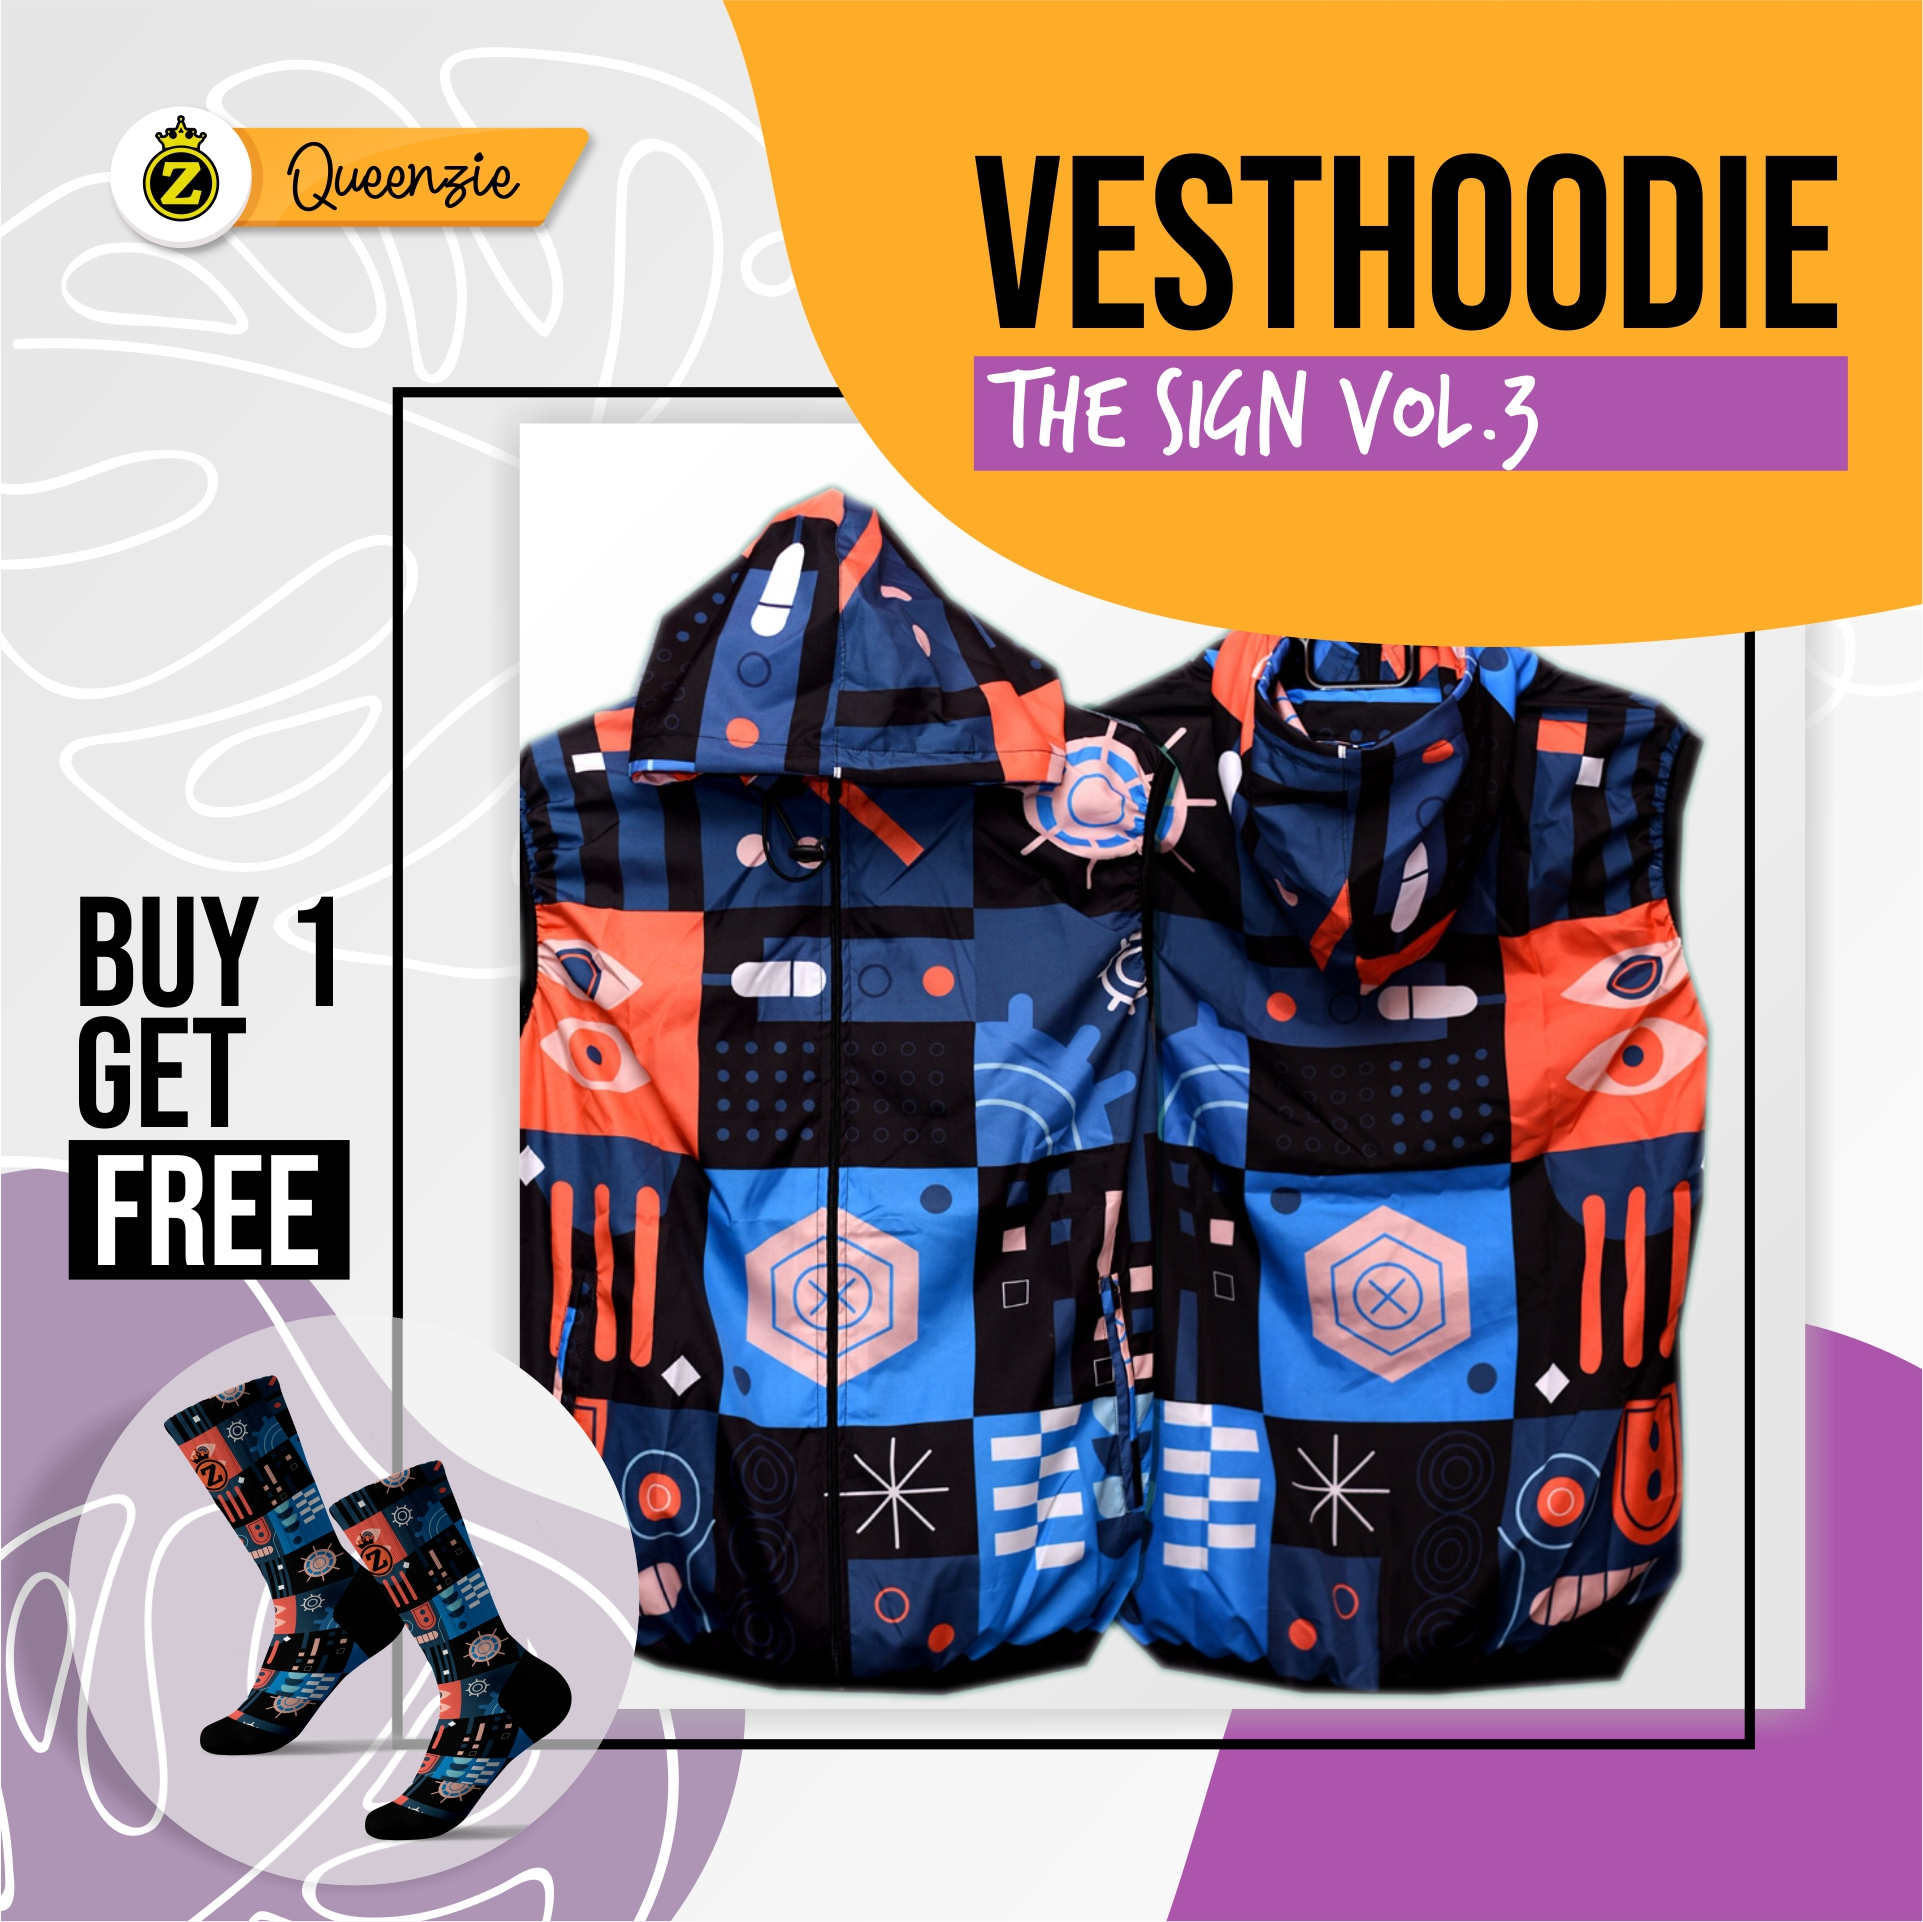 Vesthoodie The Sign Vol3 - Ziproduction